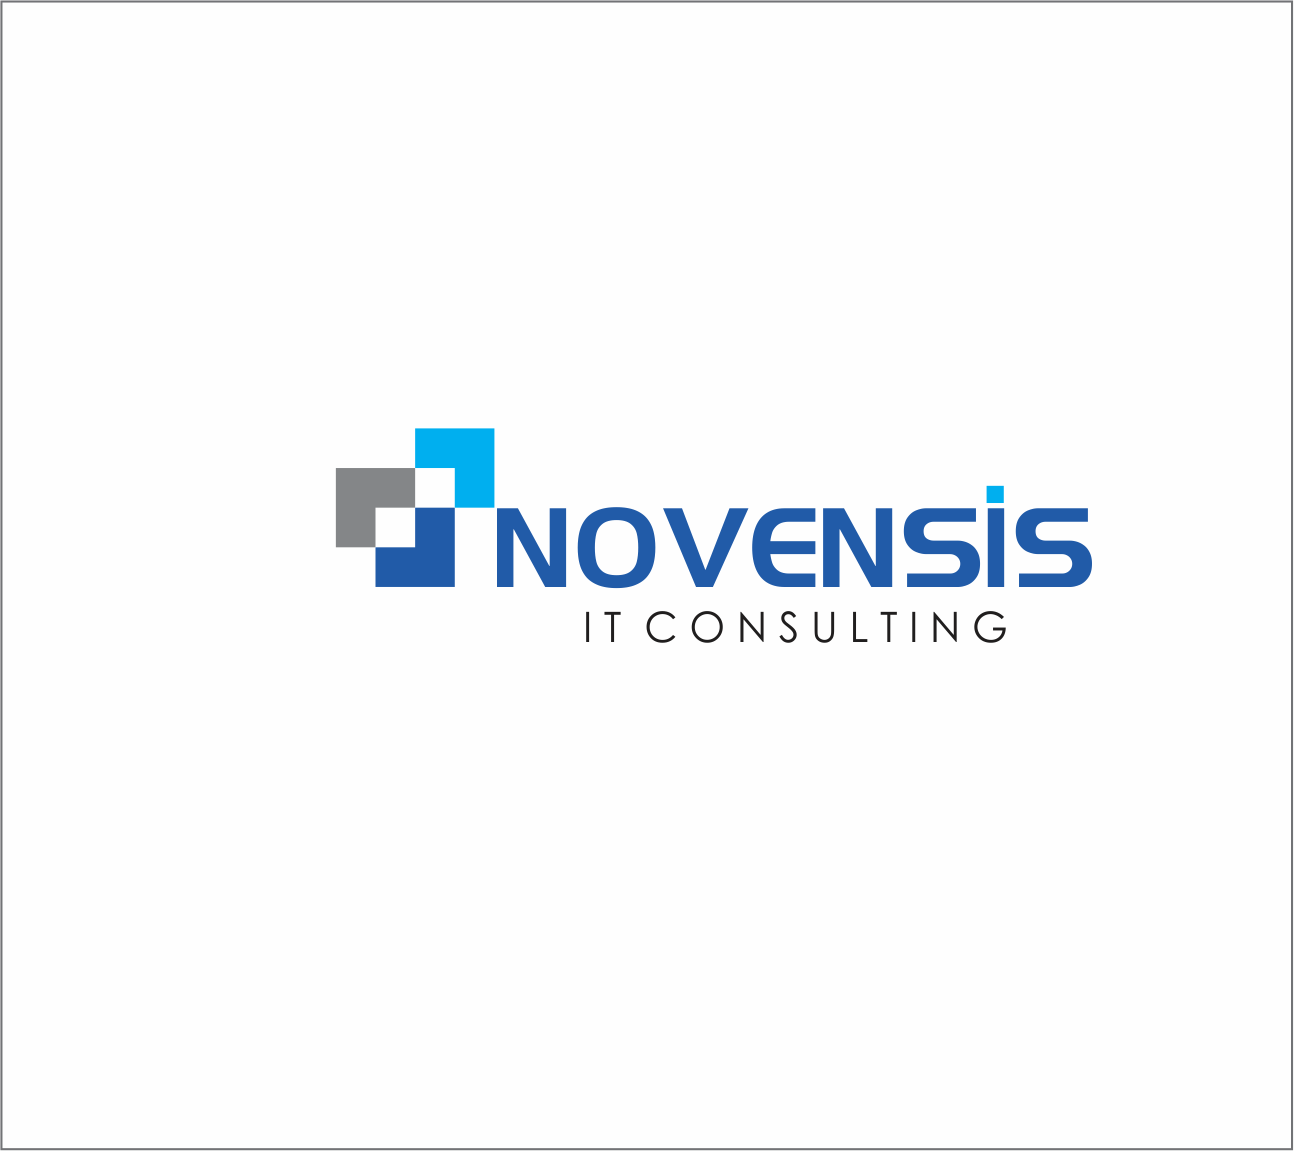 Logo Design by Armada Jamaluddin - Entry No. 161 in the Logo Design Contest Novensis Logo Design.